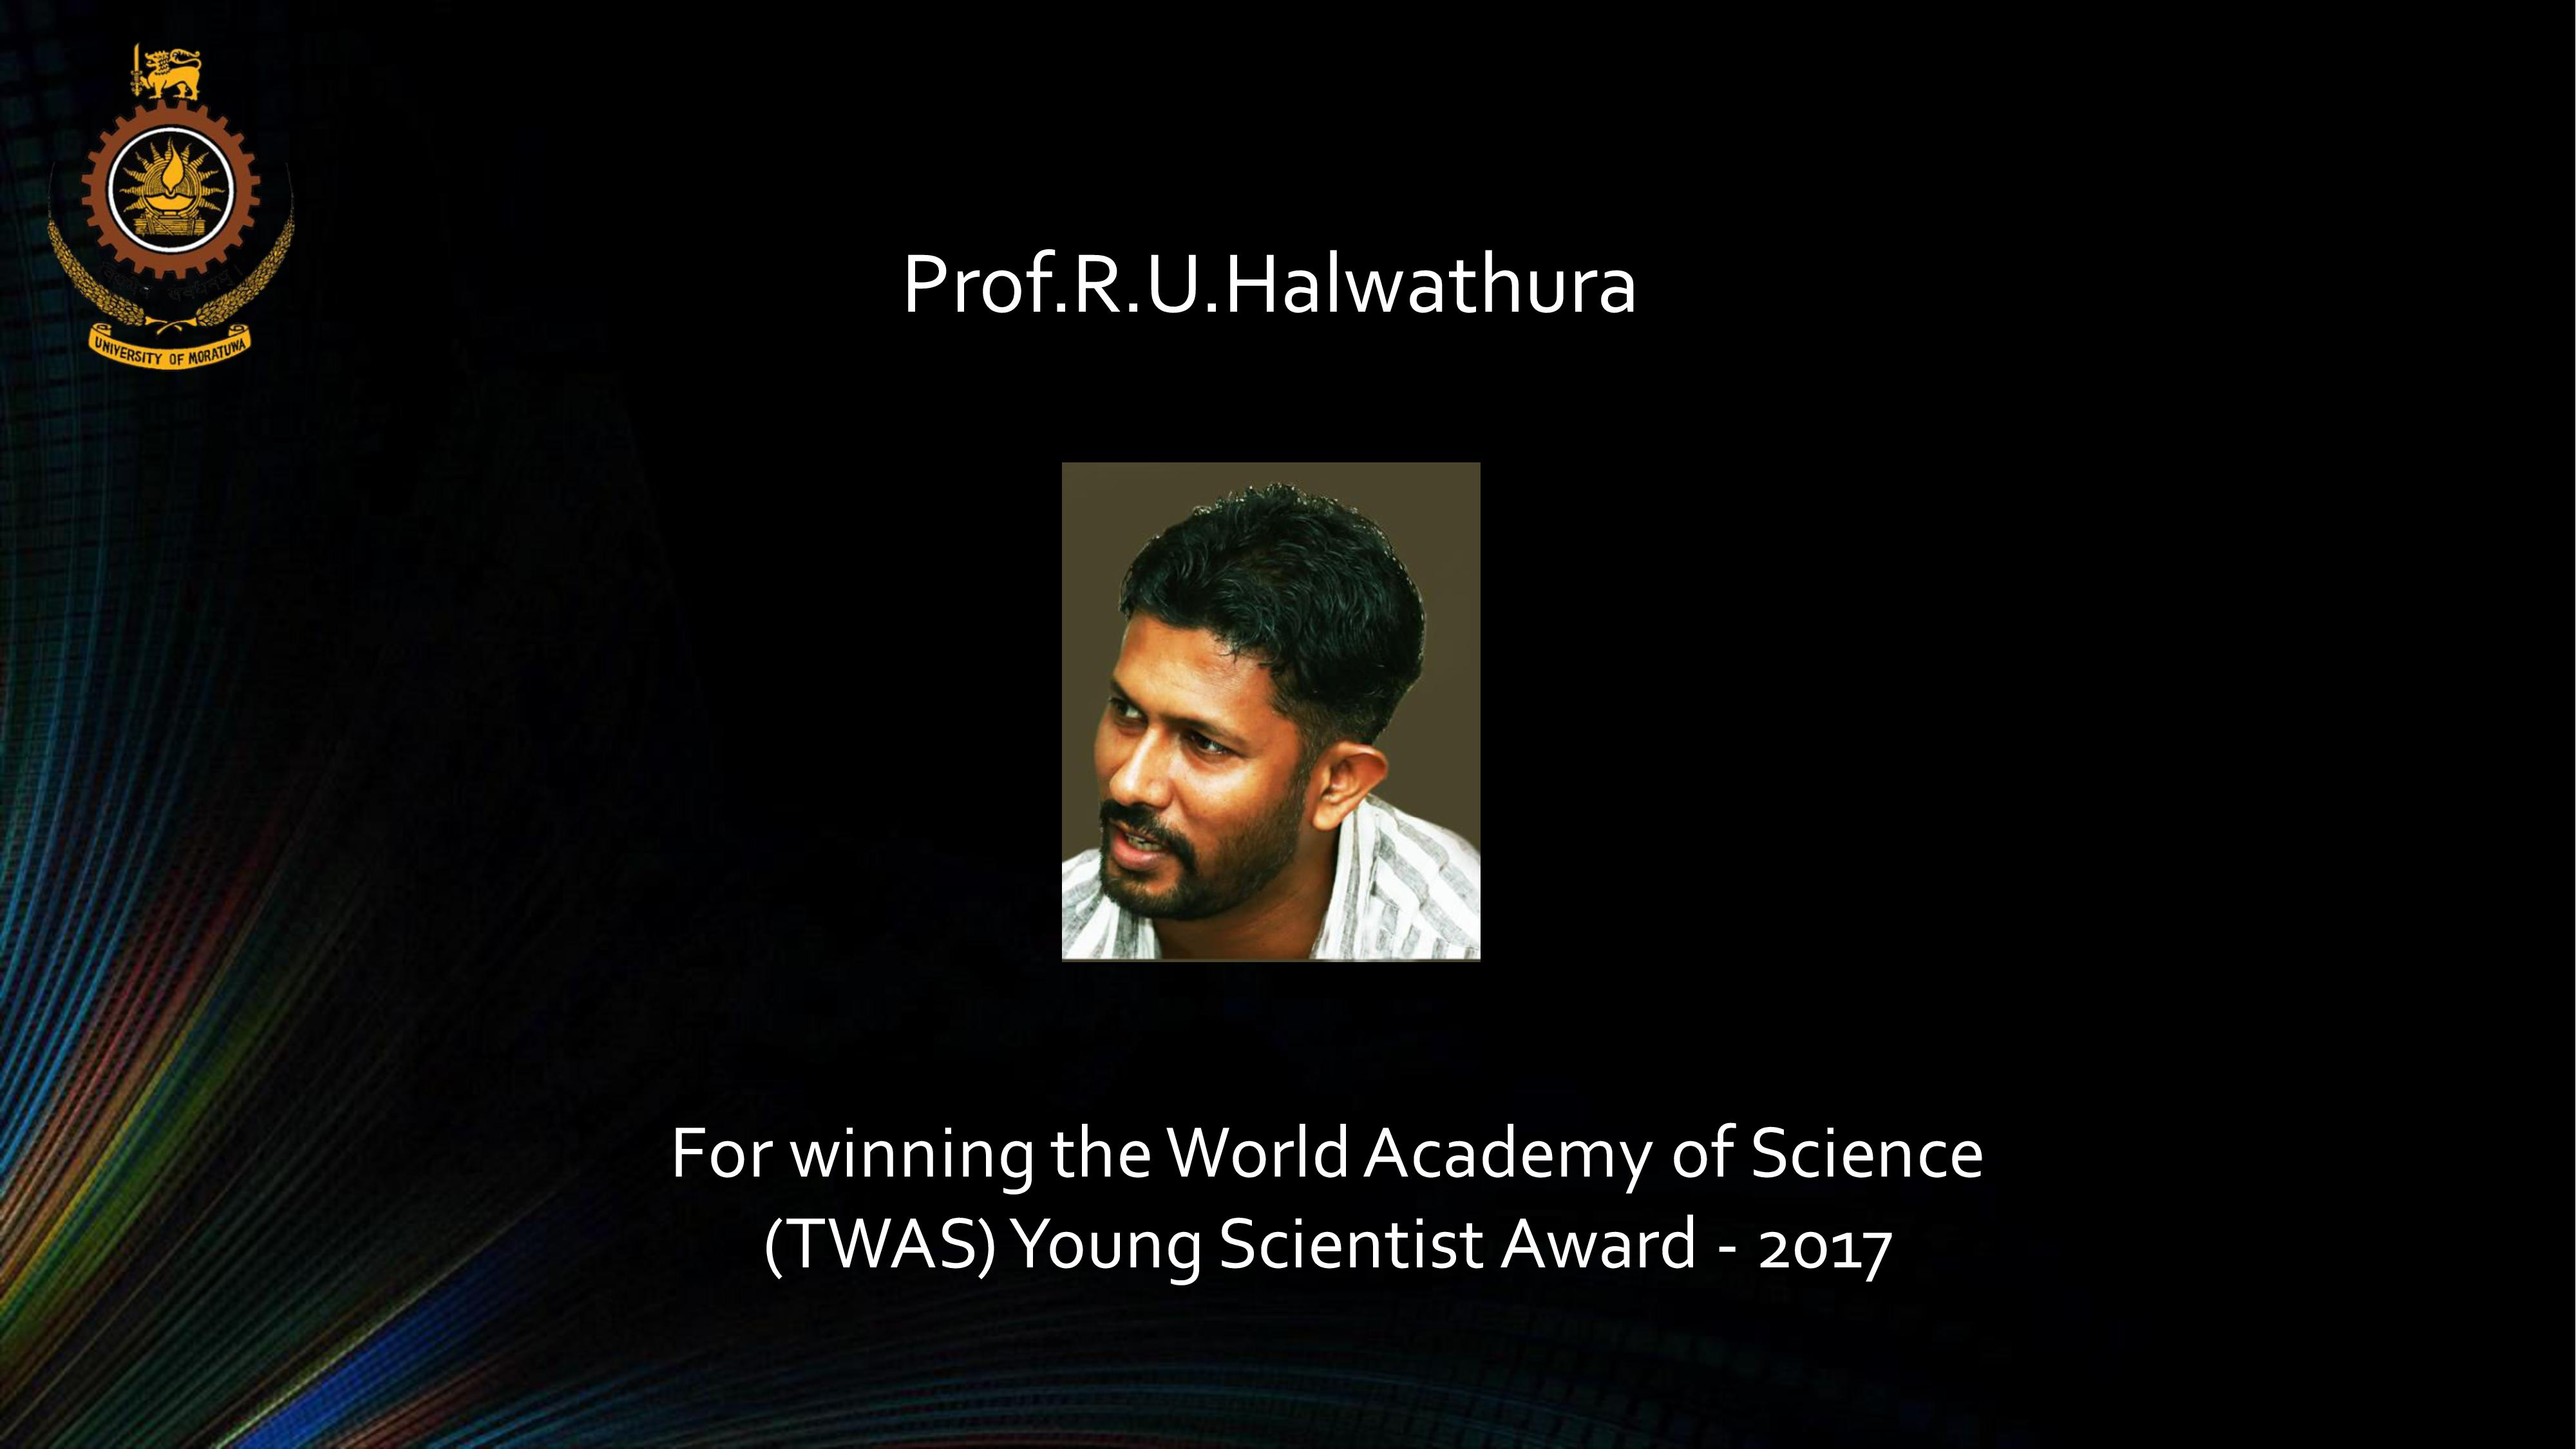 Winner of the World Academy of Science (TWAS) Young Scientist Award 2017